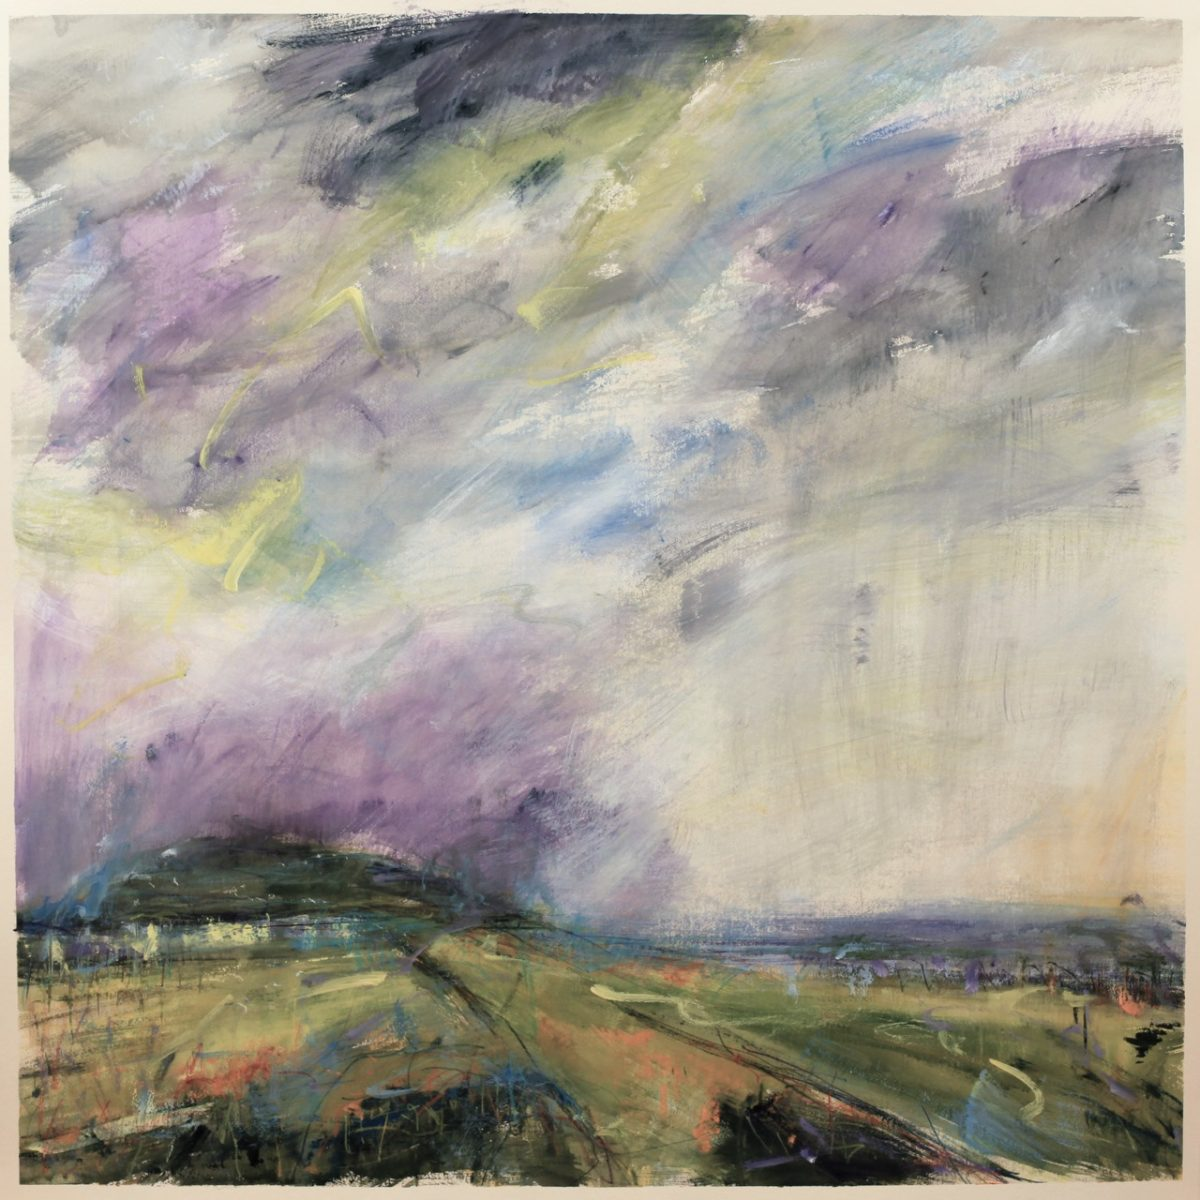 8c40300c5 Where Ancient Hills Breathe, 2018. Lucy Marks Watercolour on St. Cuthbert's  Mill paper, 104 x 104 cm